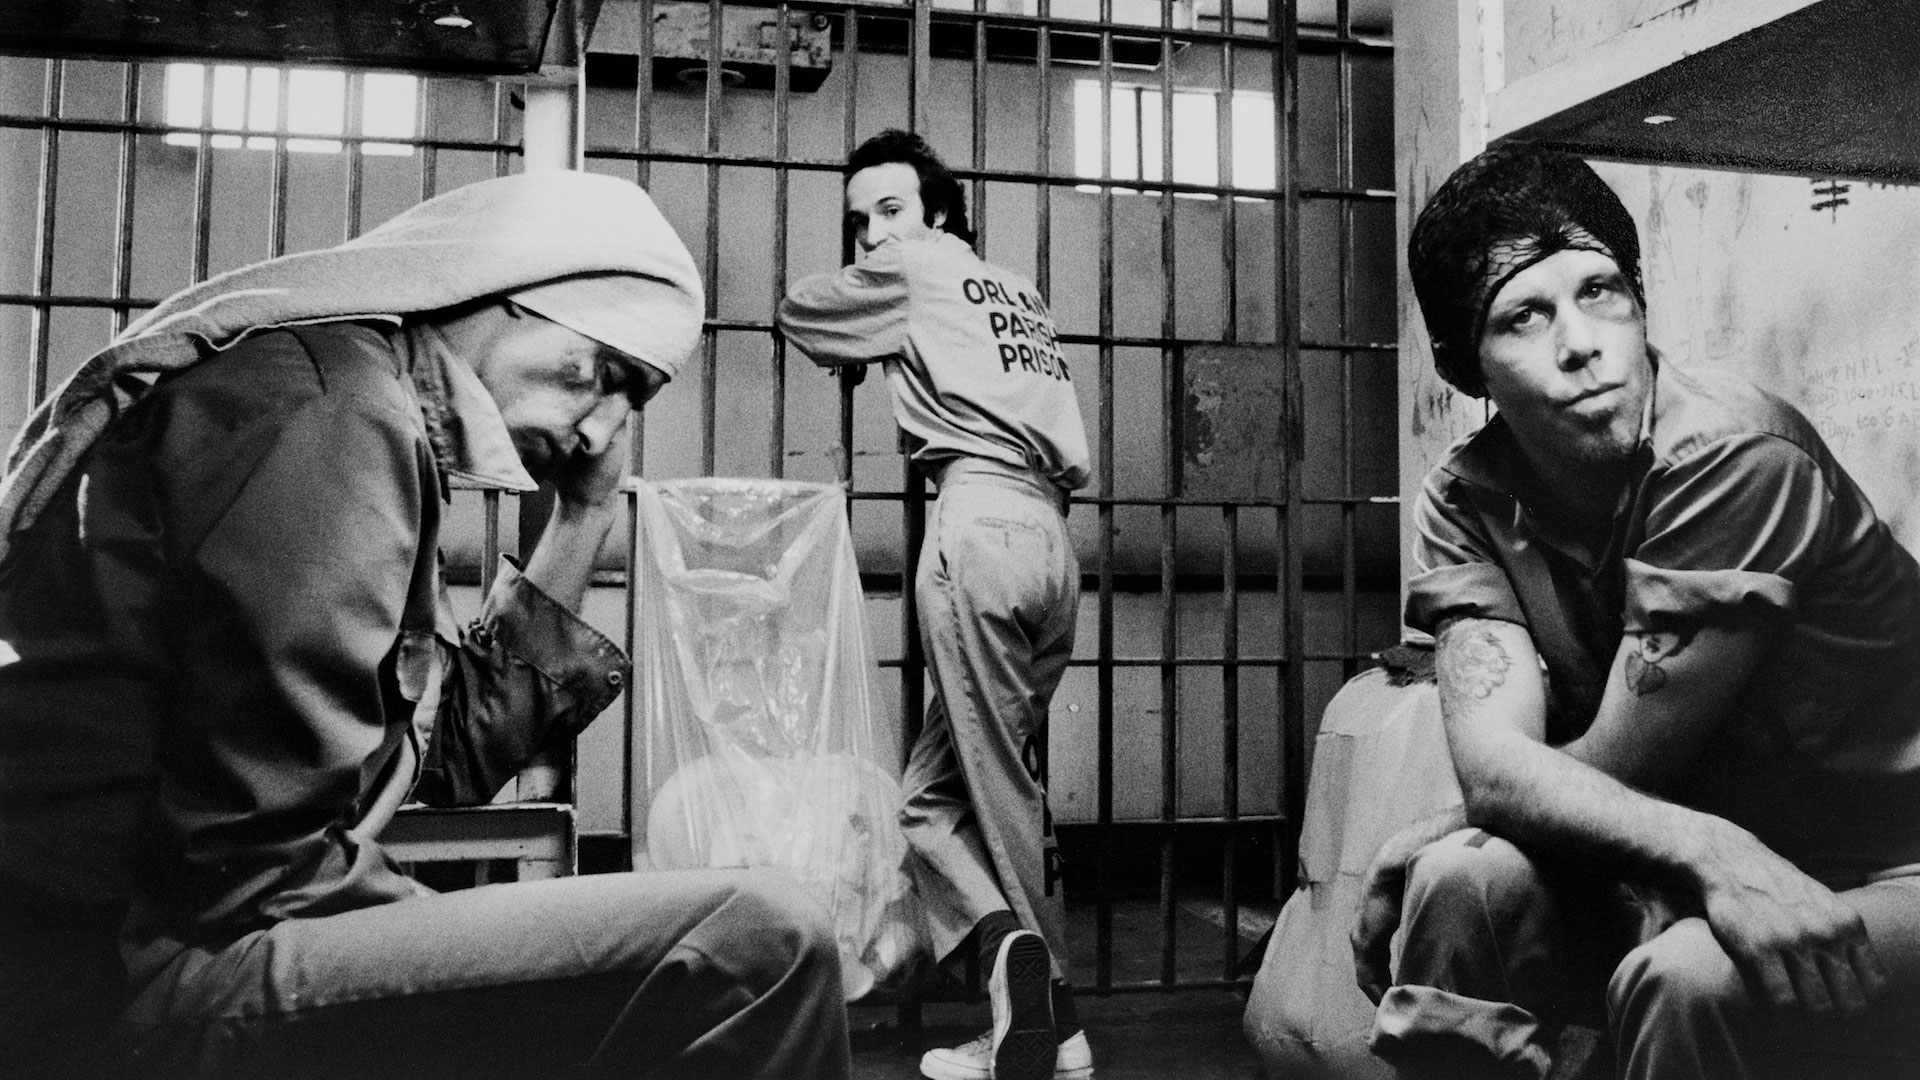 Down By Law - 1986 - Jim Jarmusch | John Lurie, Tom Waits, Roberto Benigni | Photo